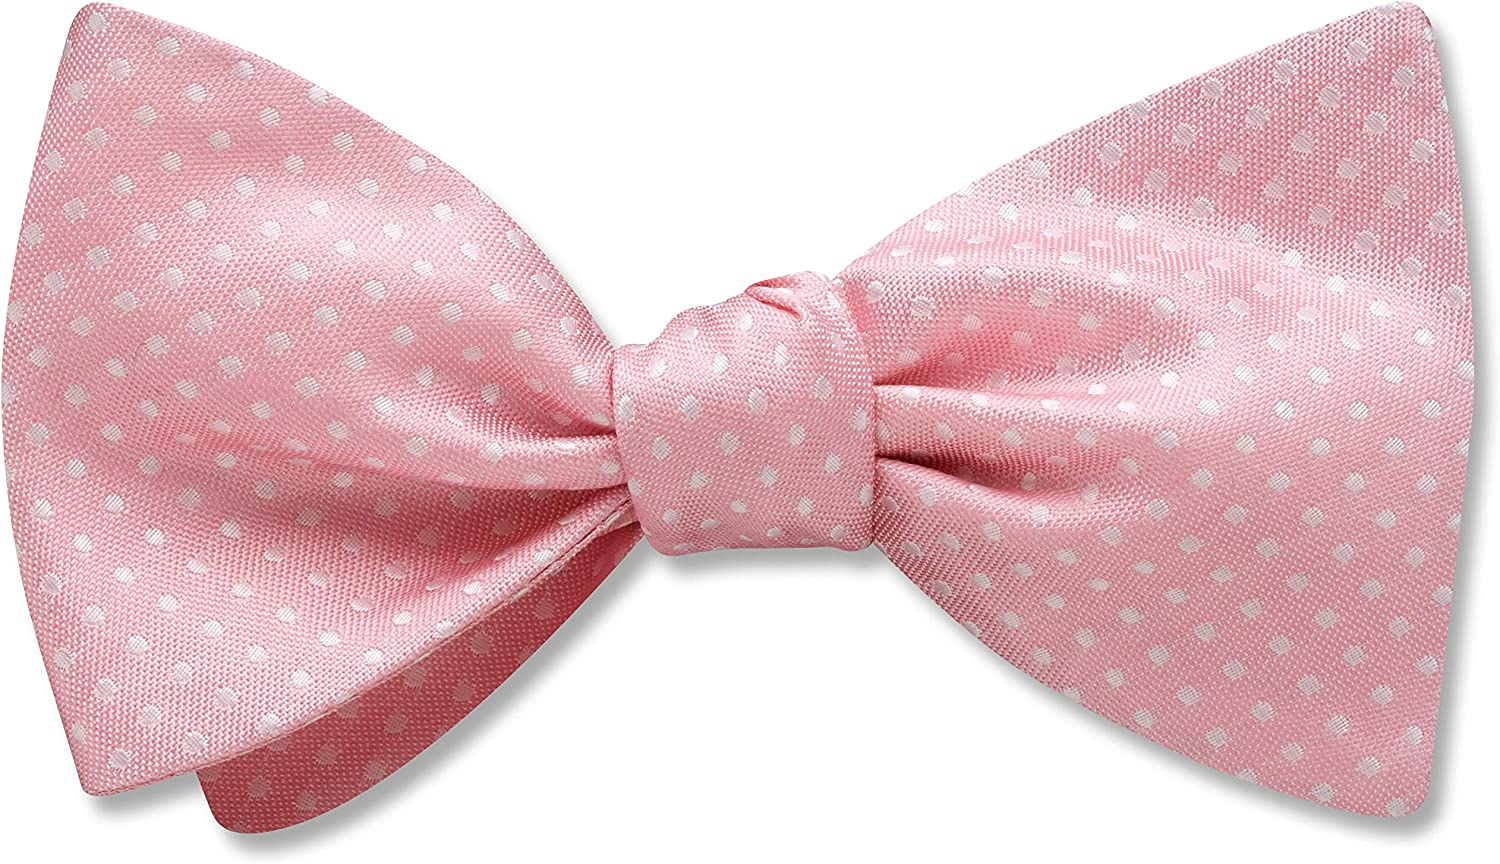 Oriel Pink Pink Polka Dot, Men's Bow Tie, Handmade in the USA